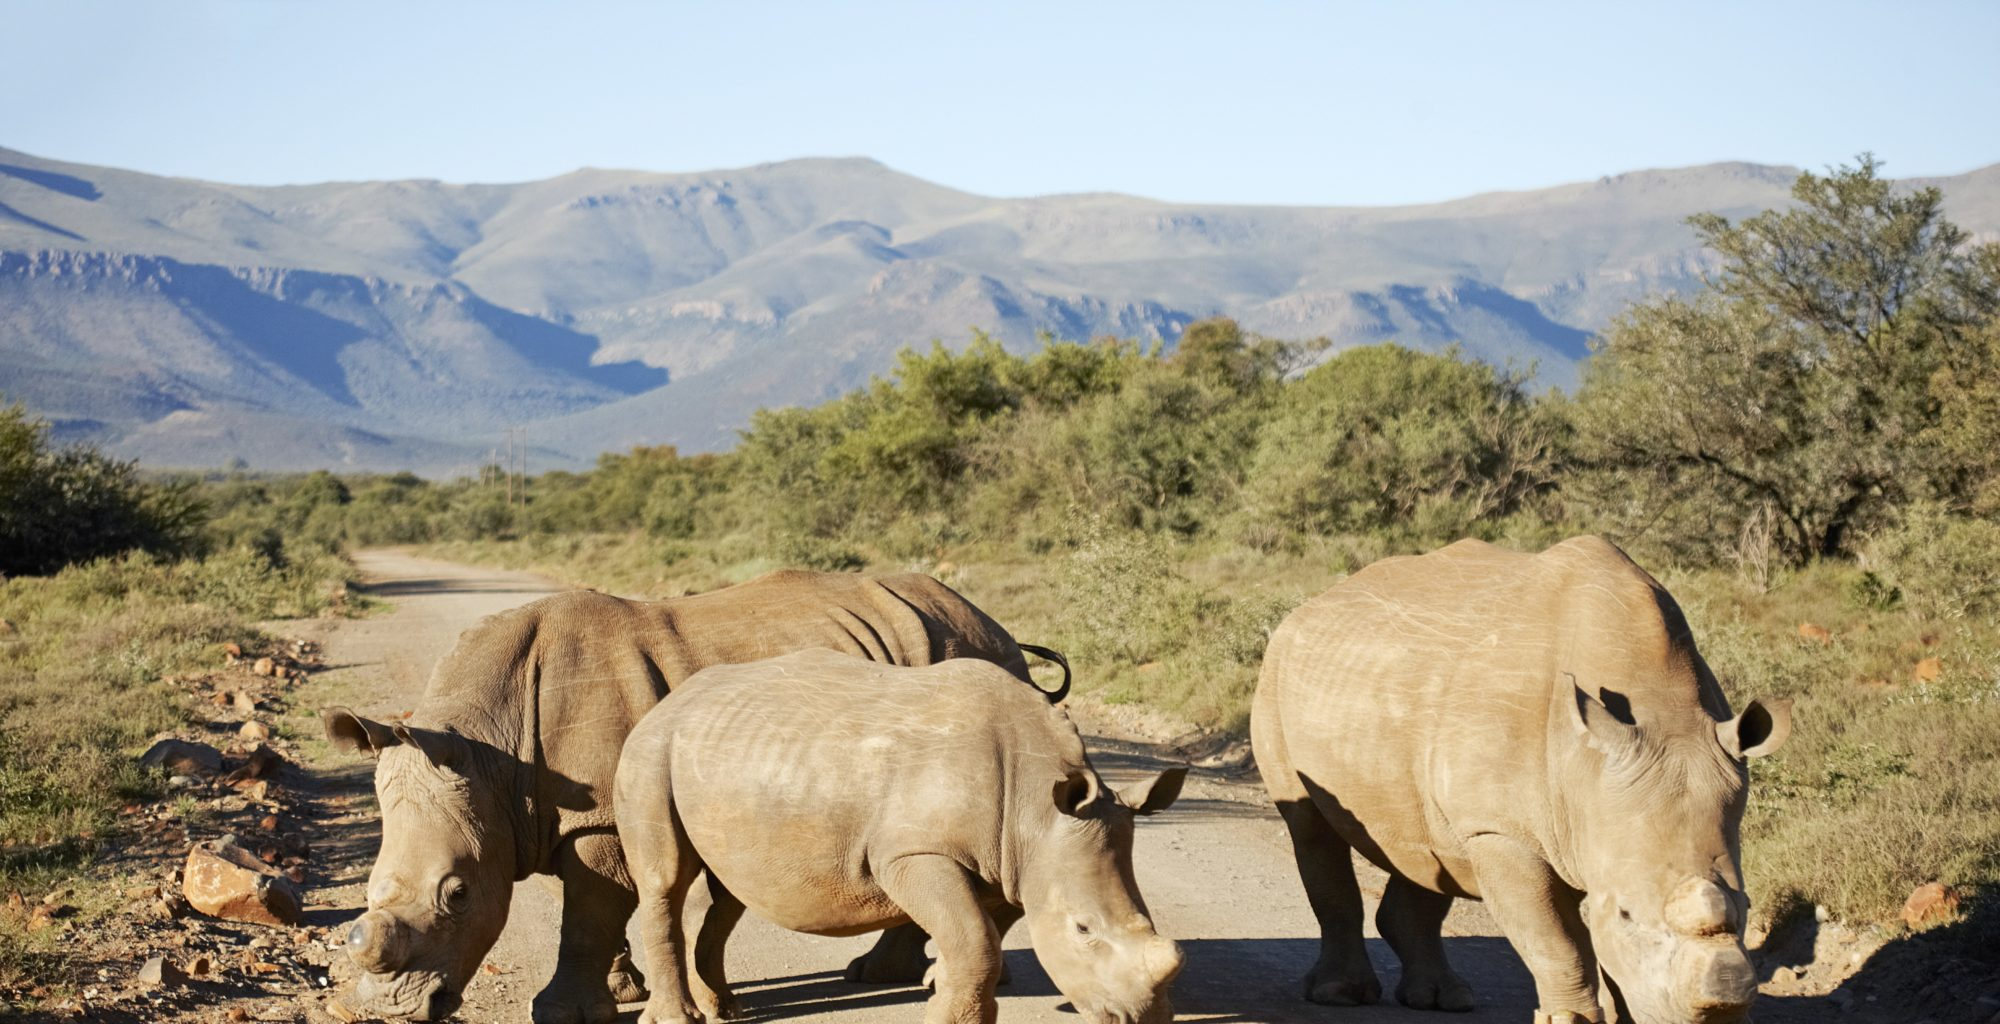 Rhinos in The Great Karoo